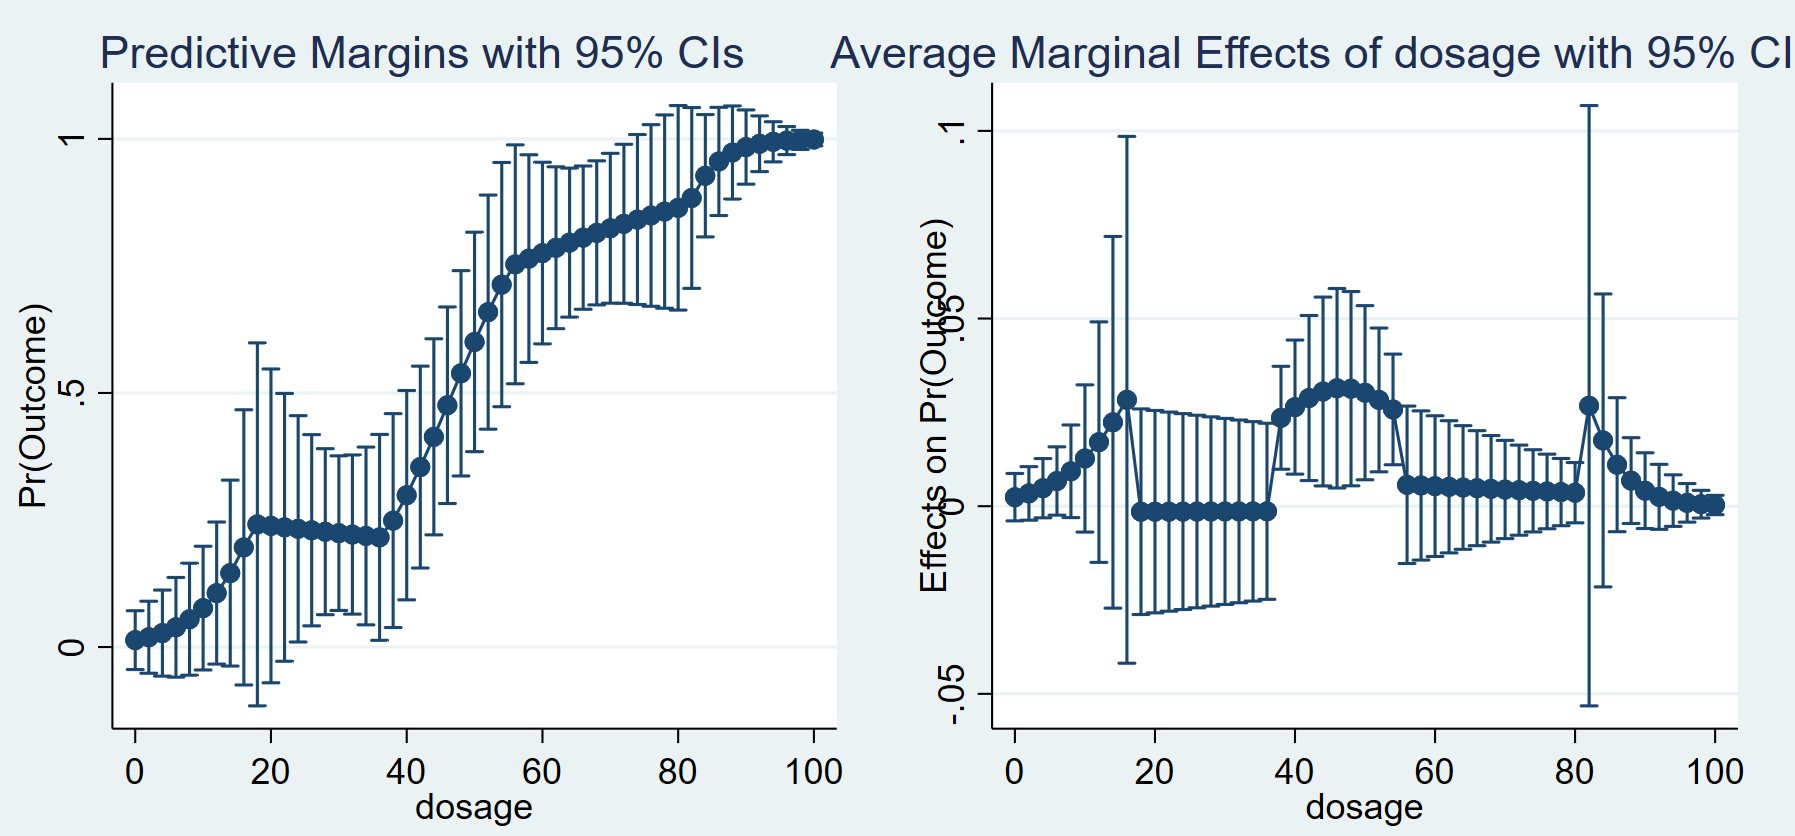 Figure 1. Predicted probabilities and Marginal effects